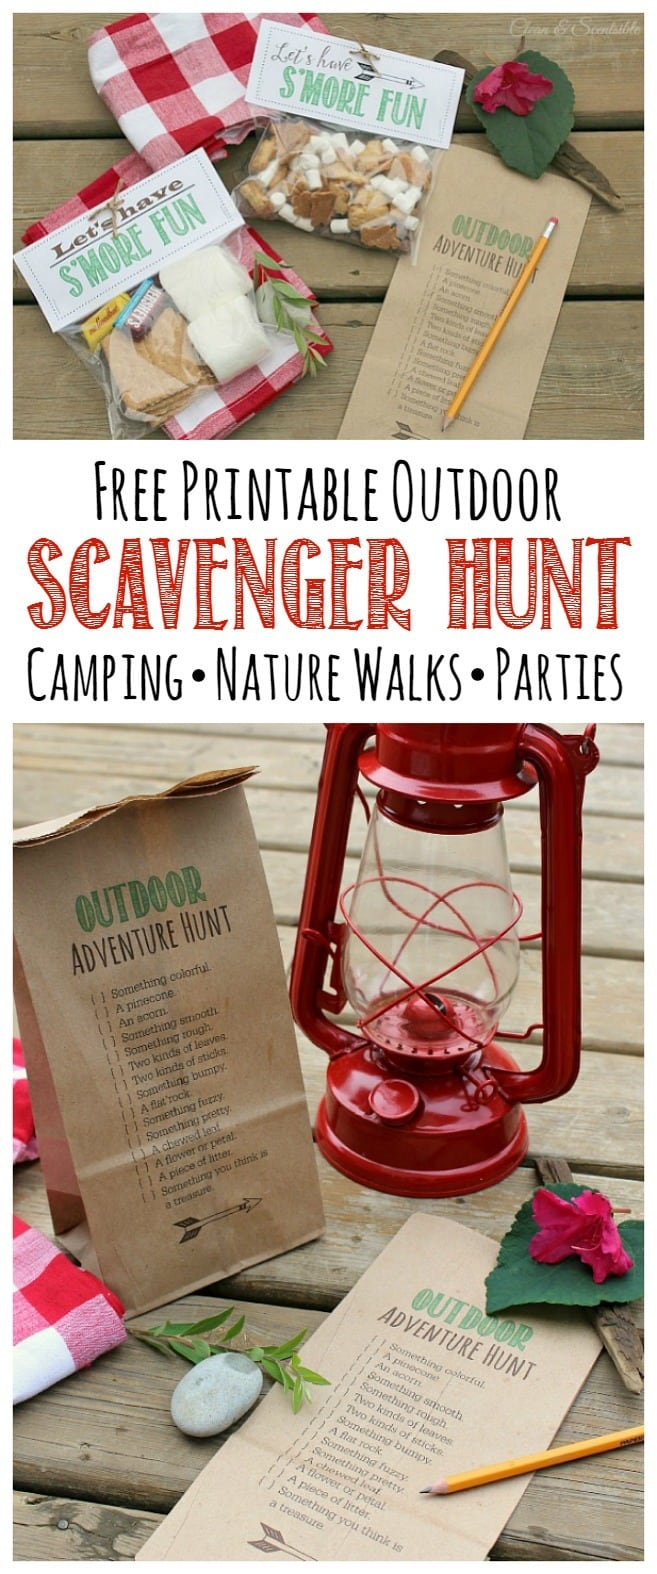 Free-Printable-Outdoor-Scavenger-Hunt